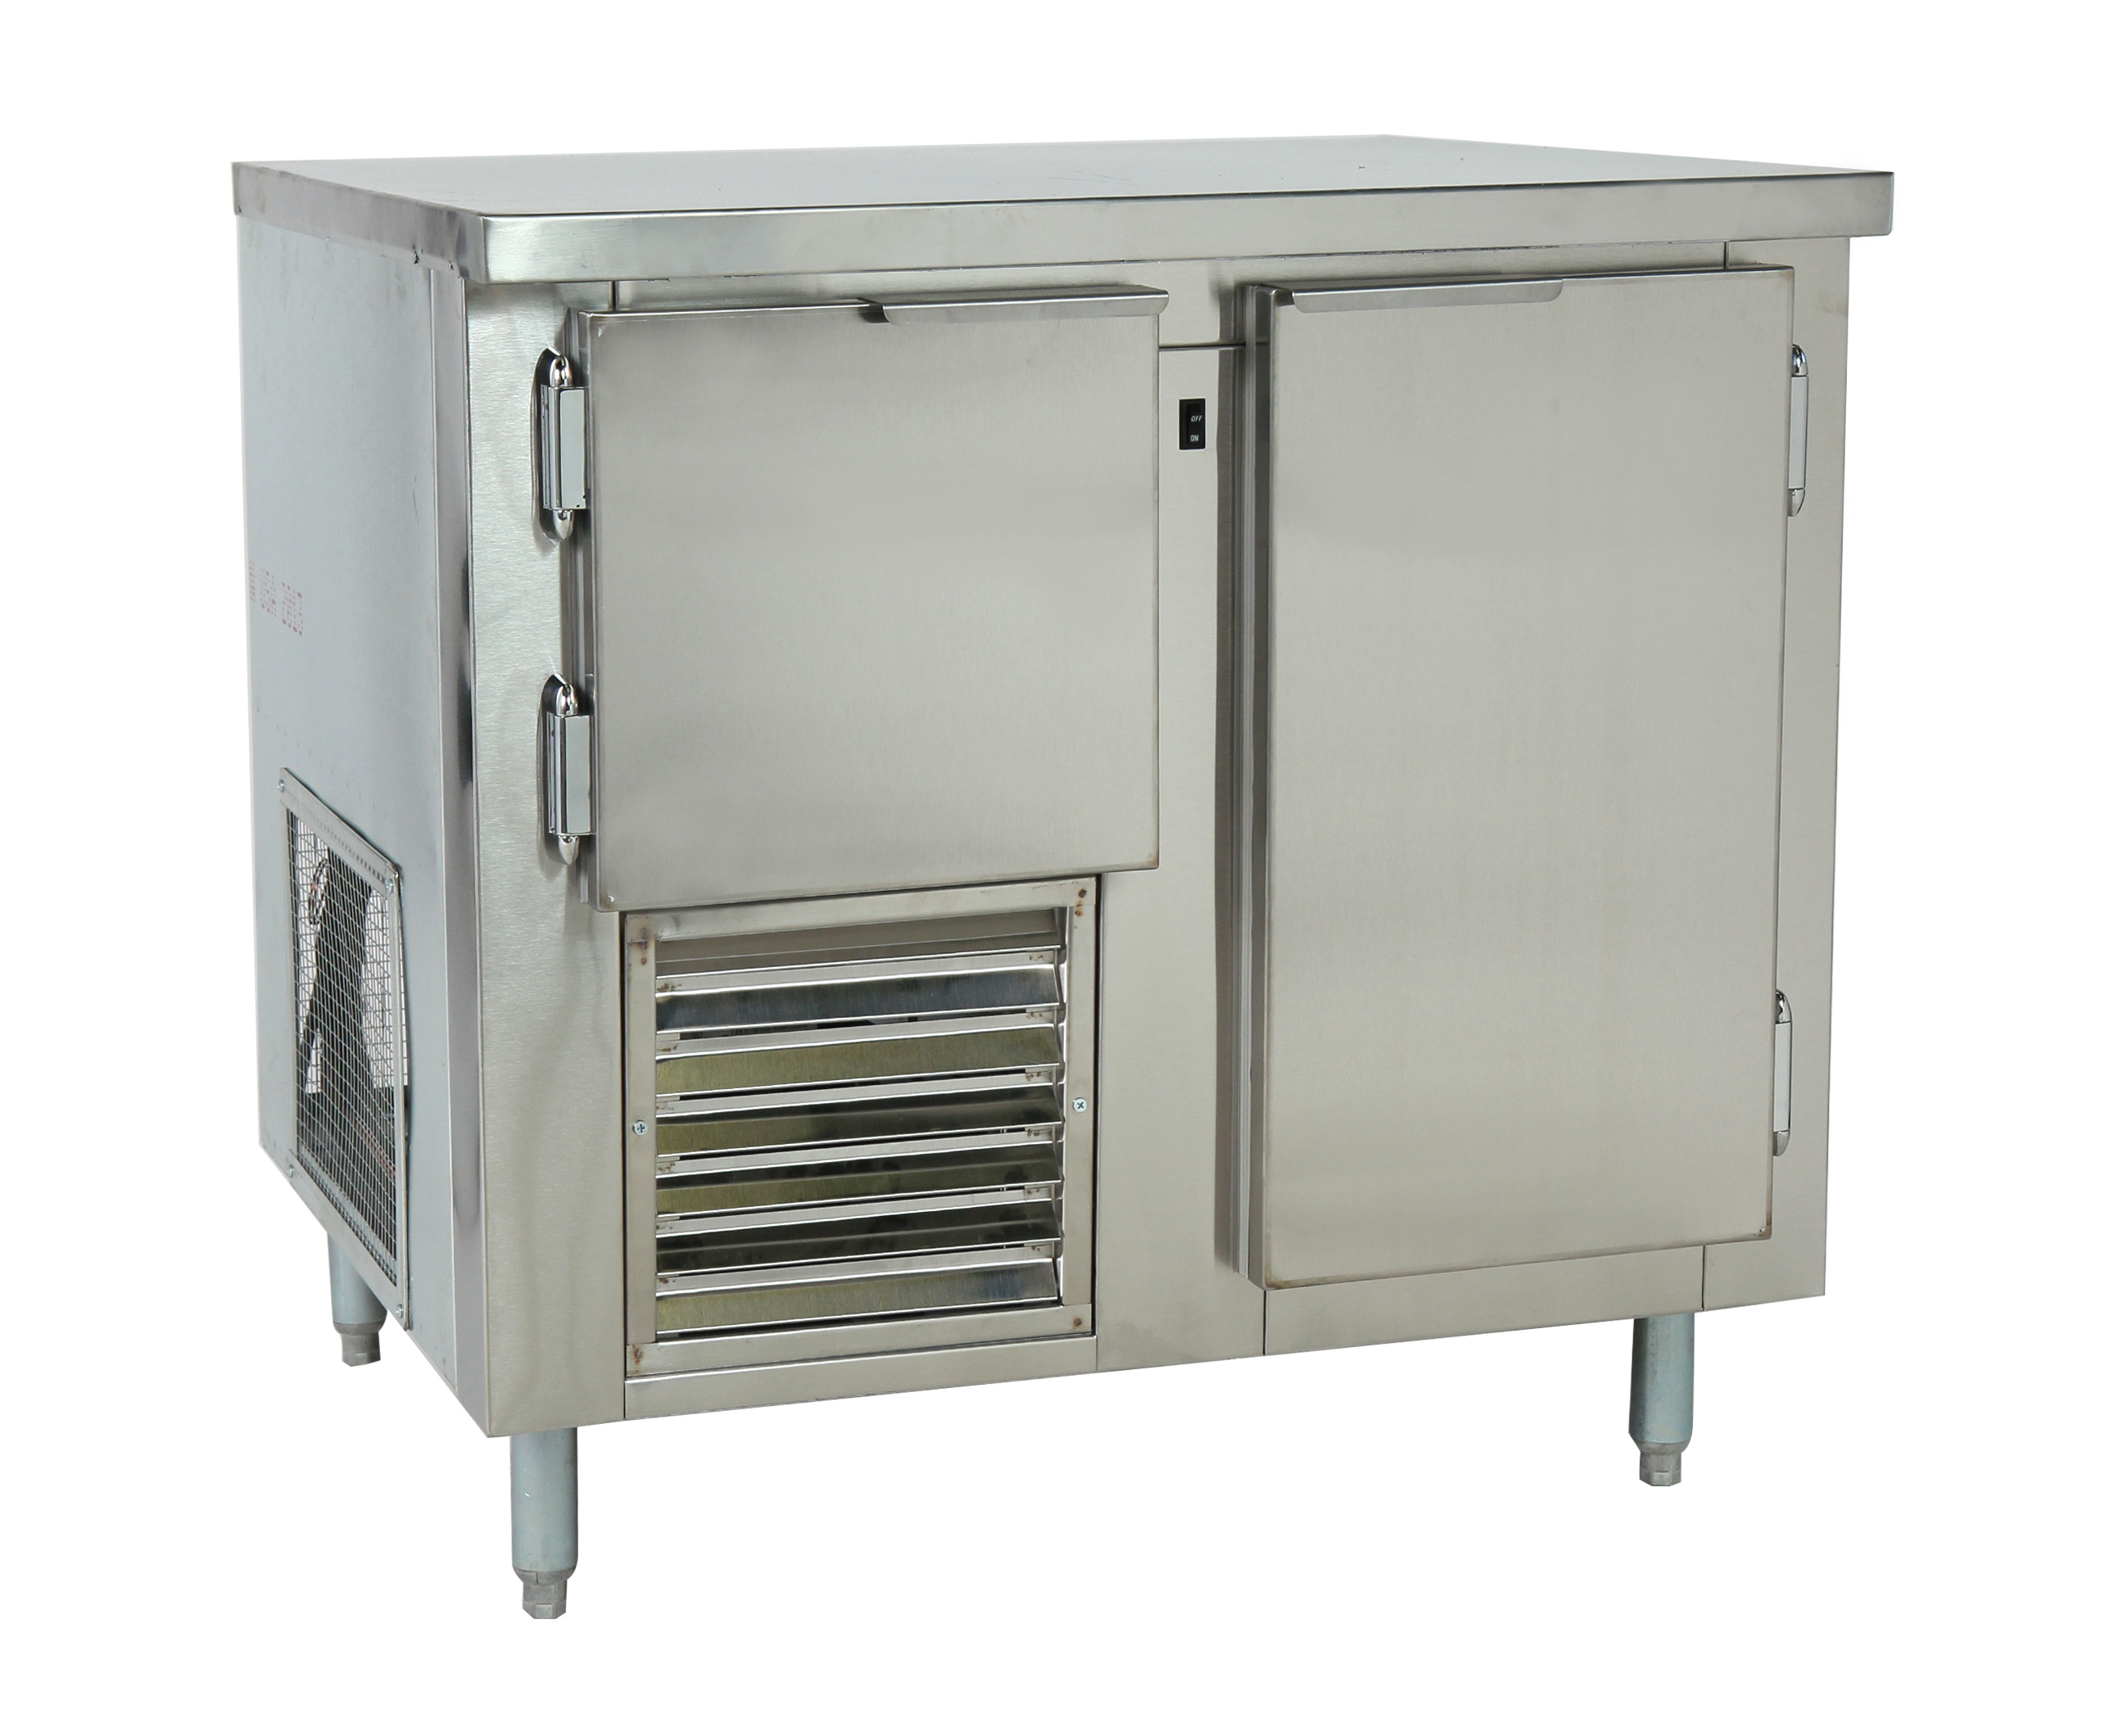 Universal Coolers | RESTAURANT KITCHEN EQUIPMENT